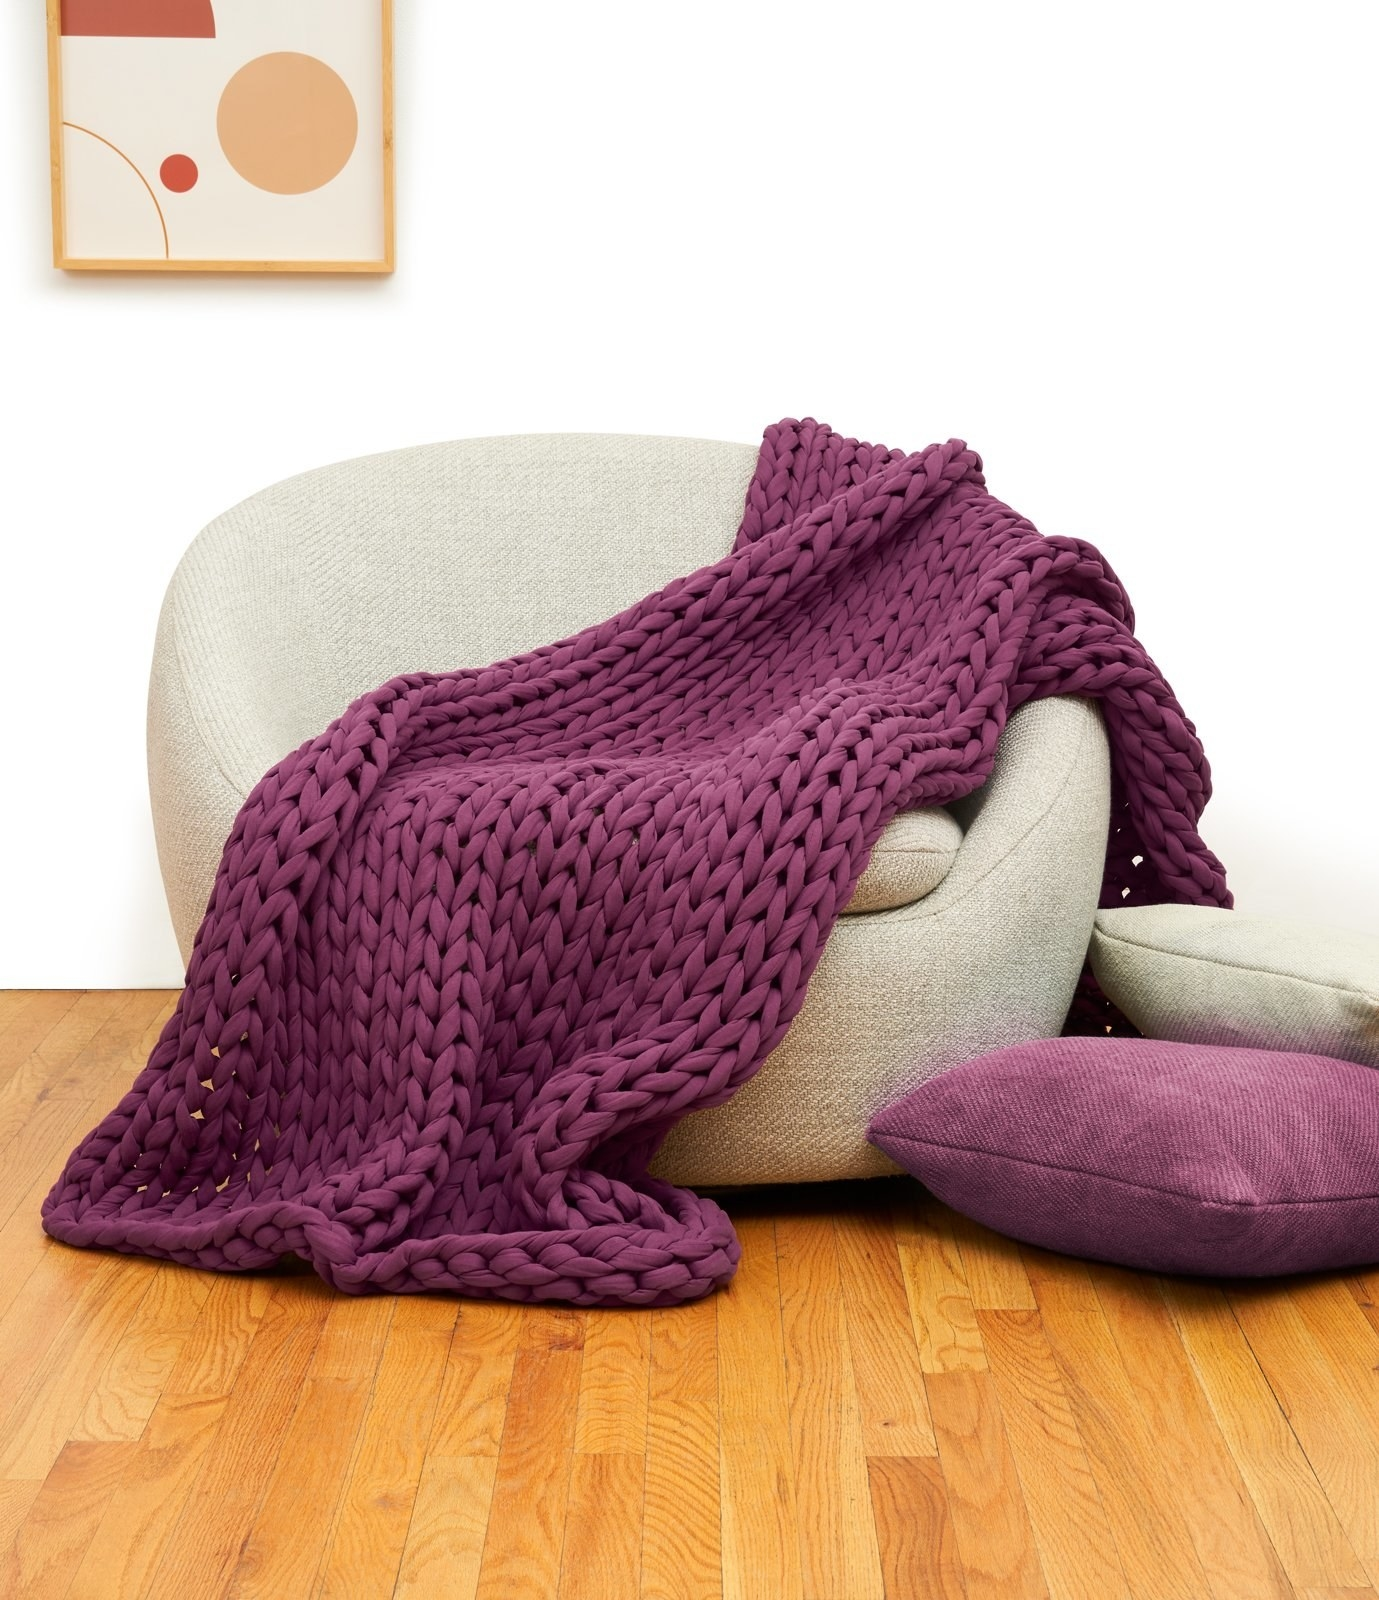 The chunky knit blanket in purple